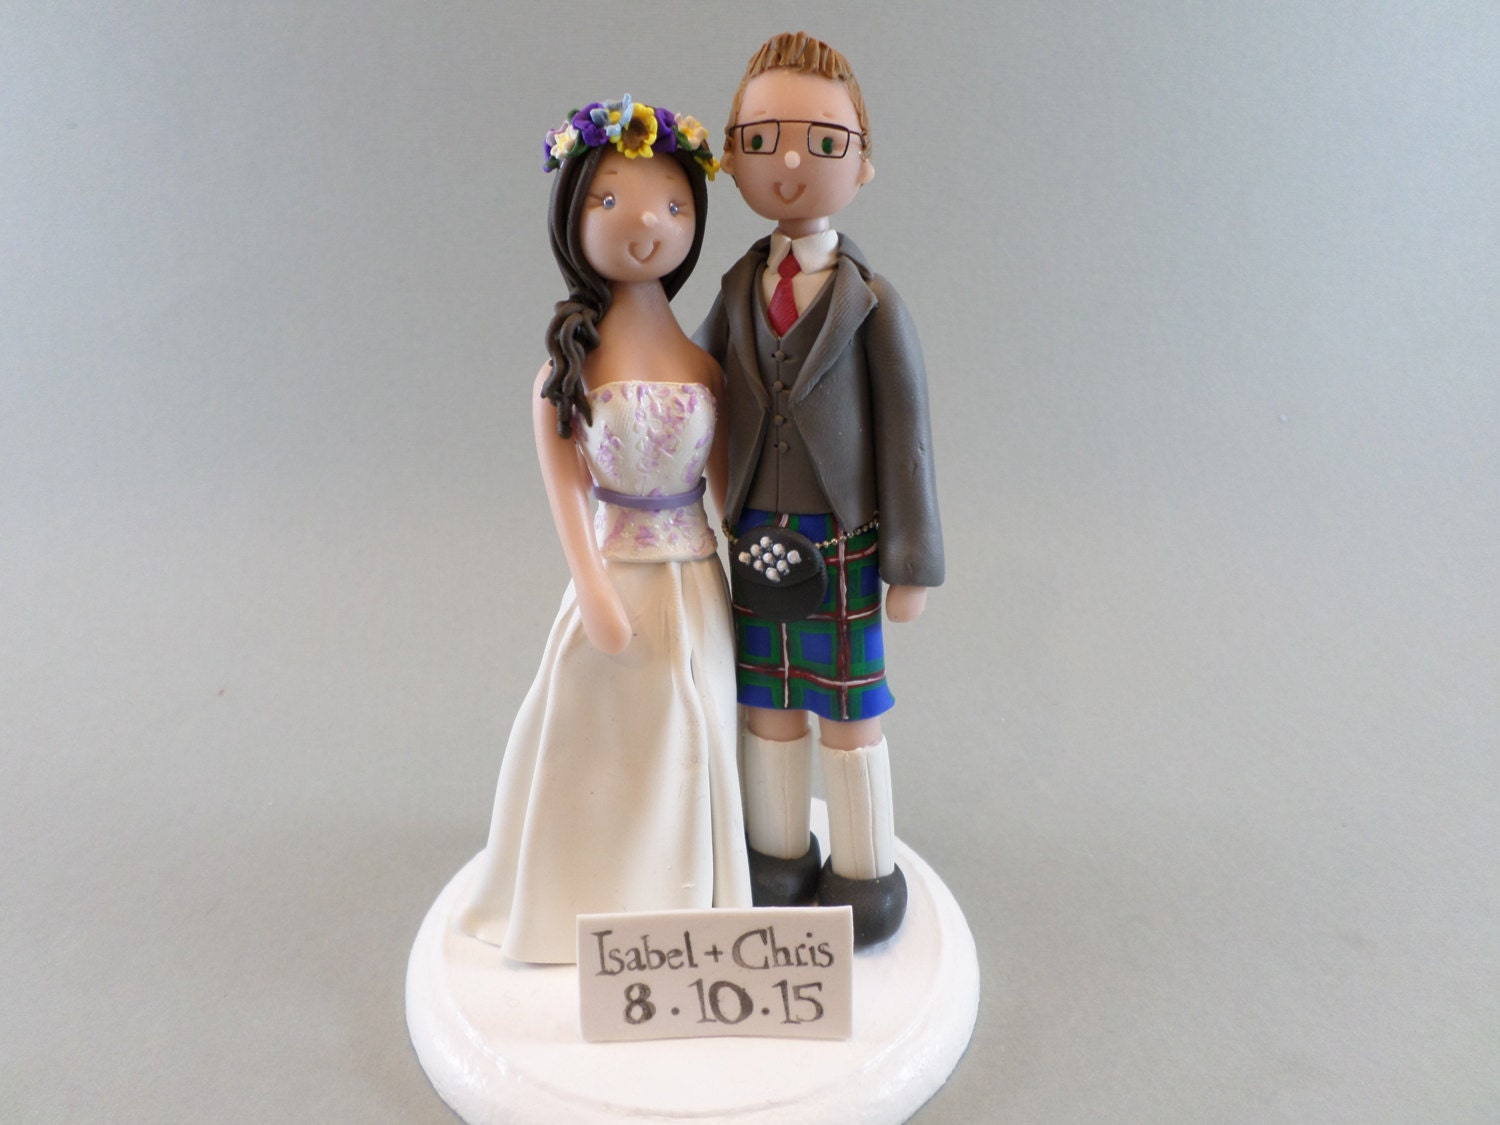 cheeky scottish wedding cake toppers customized scottish wedding cake topper 12550